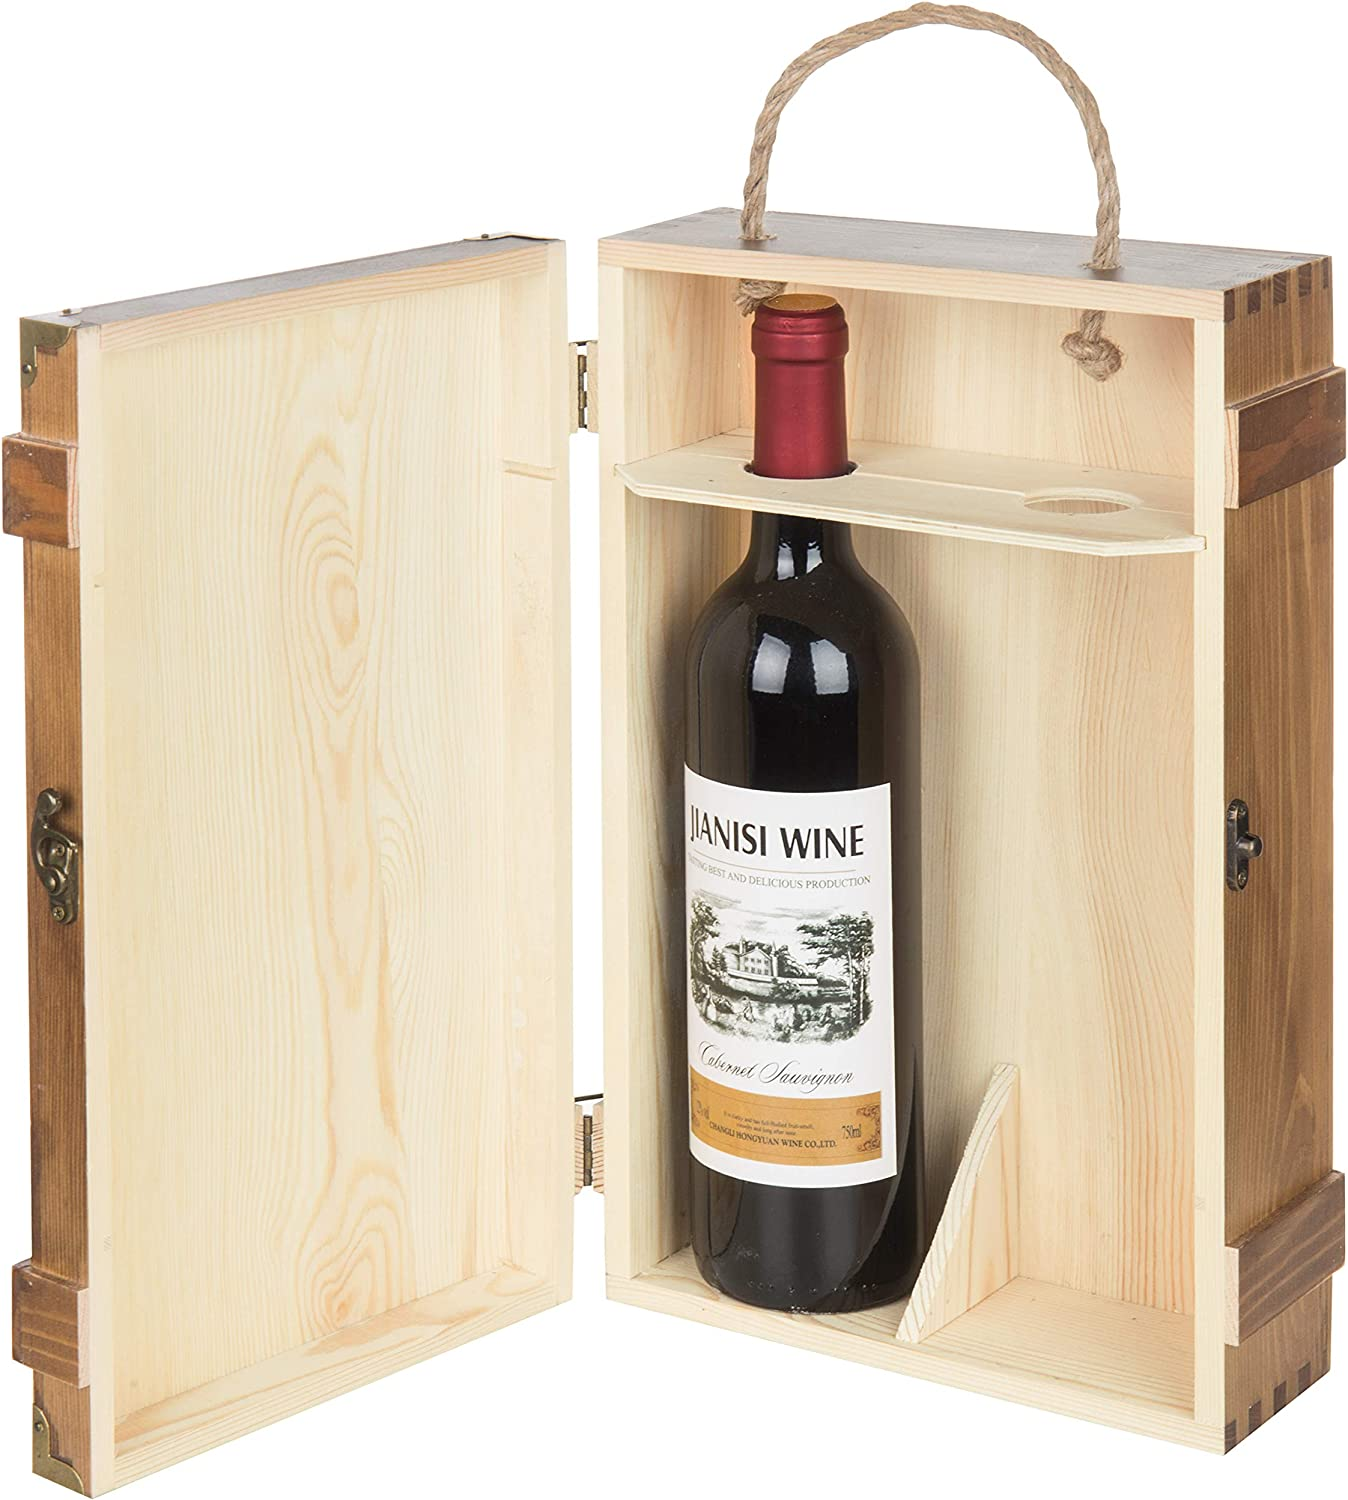 MyGift Whitewashed Wood Wine Gift Box /& Carrying Case with Chalkboard Label